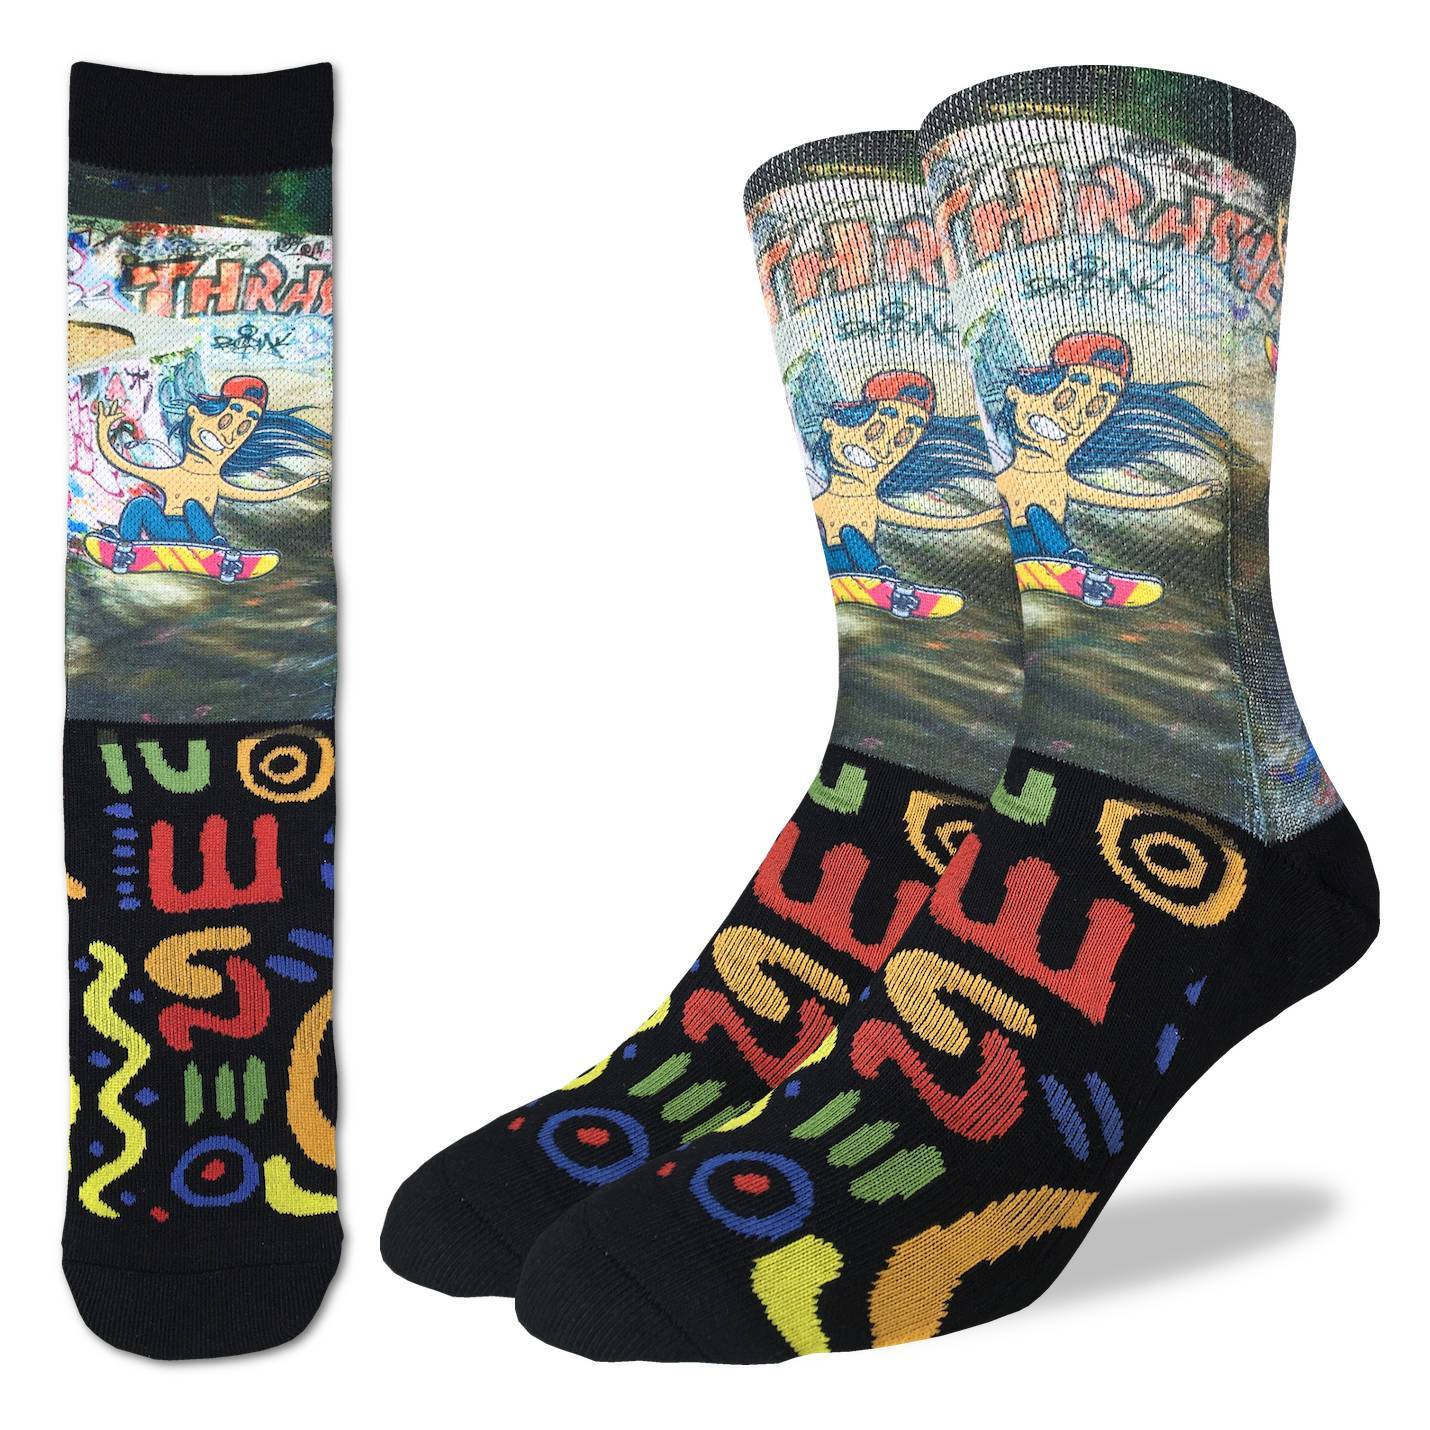 Men's Skateboarder Socks